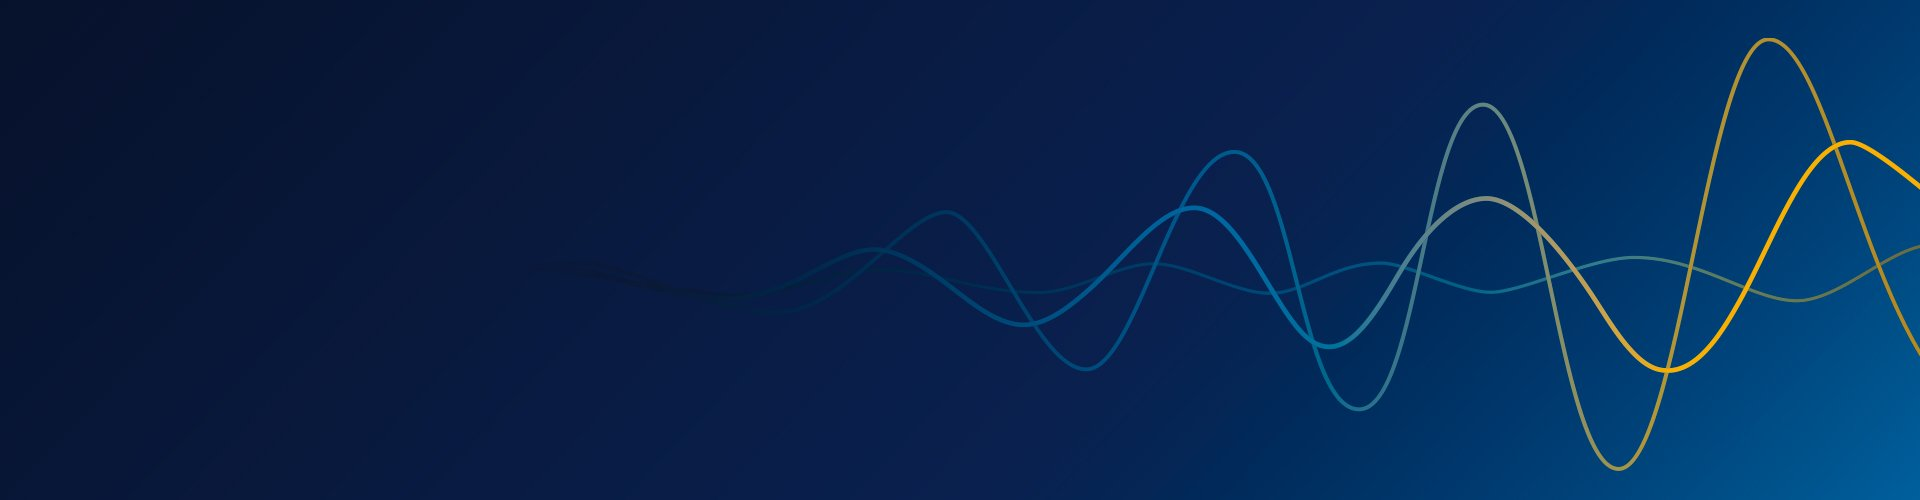 hearlink_wave_1920x500